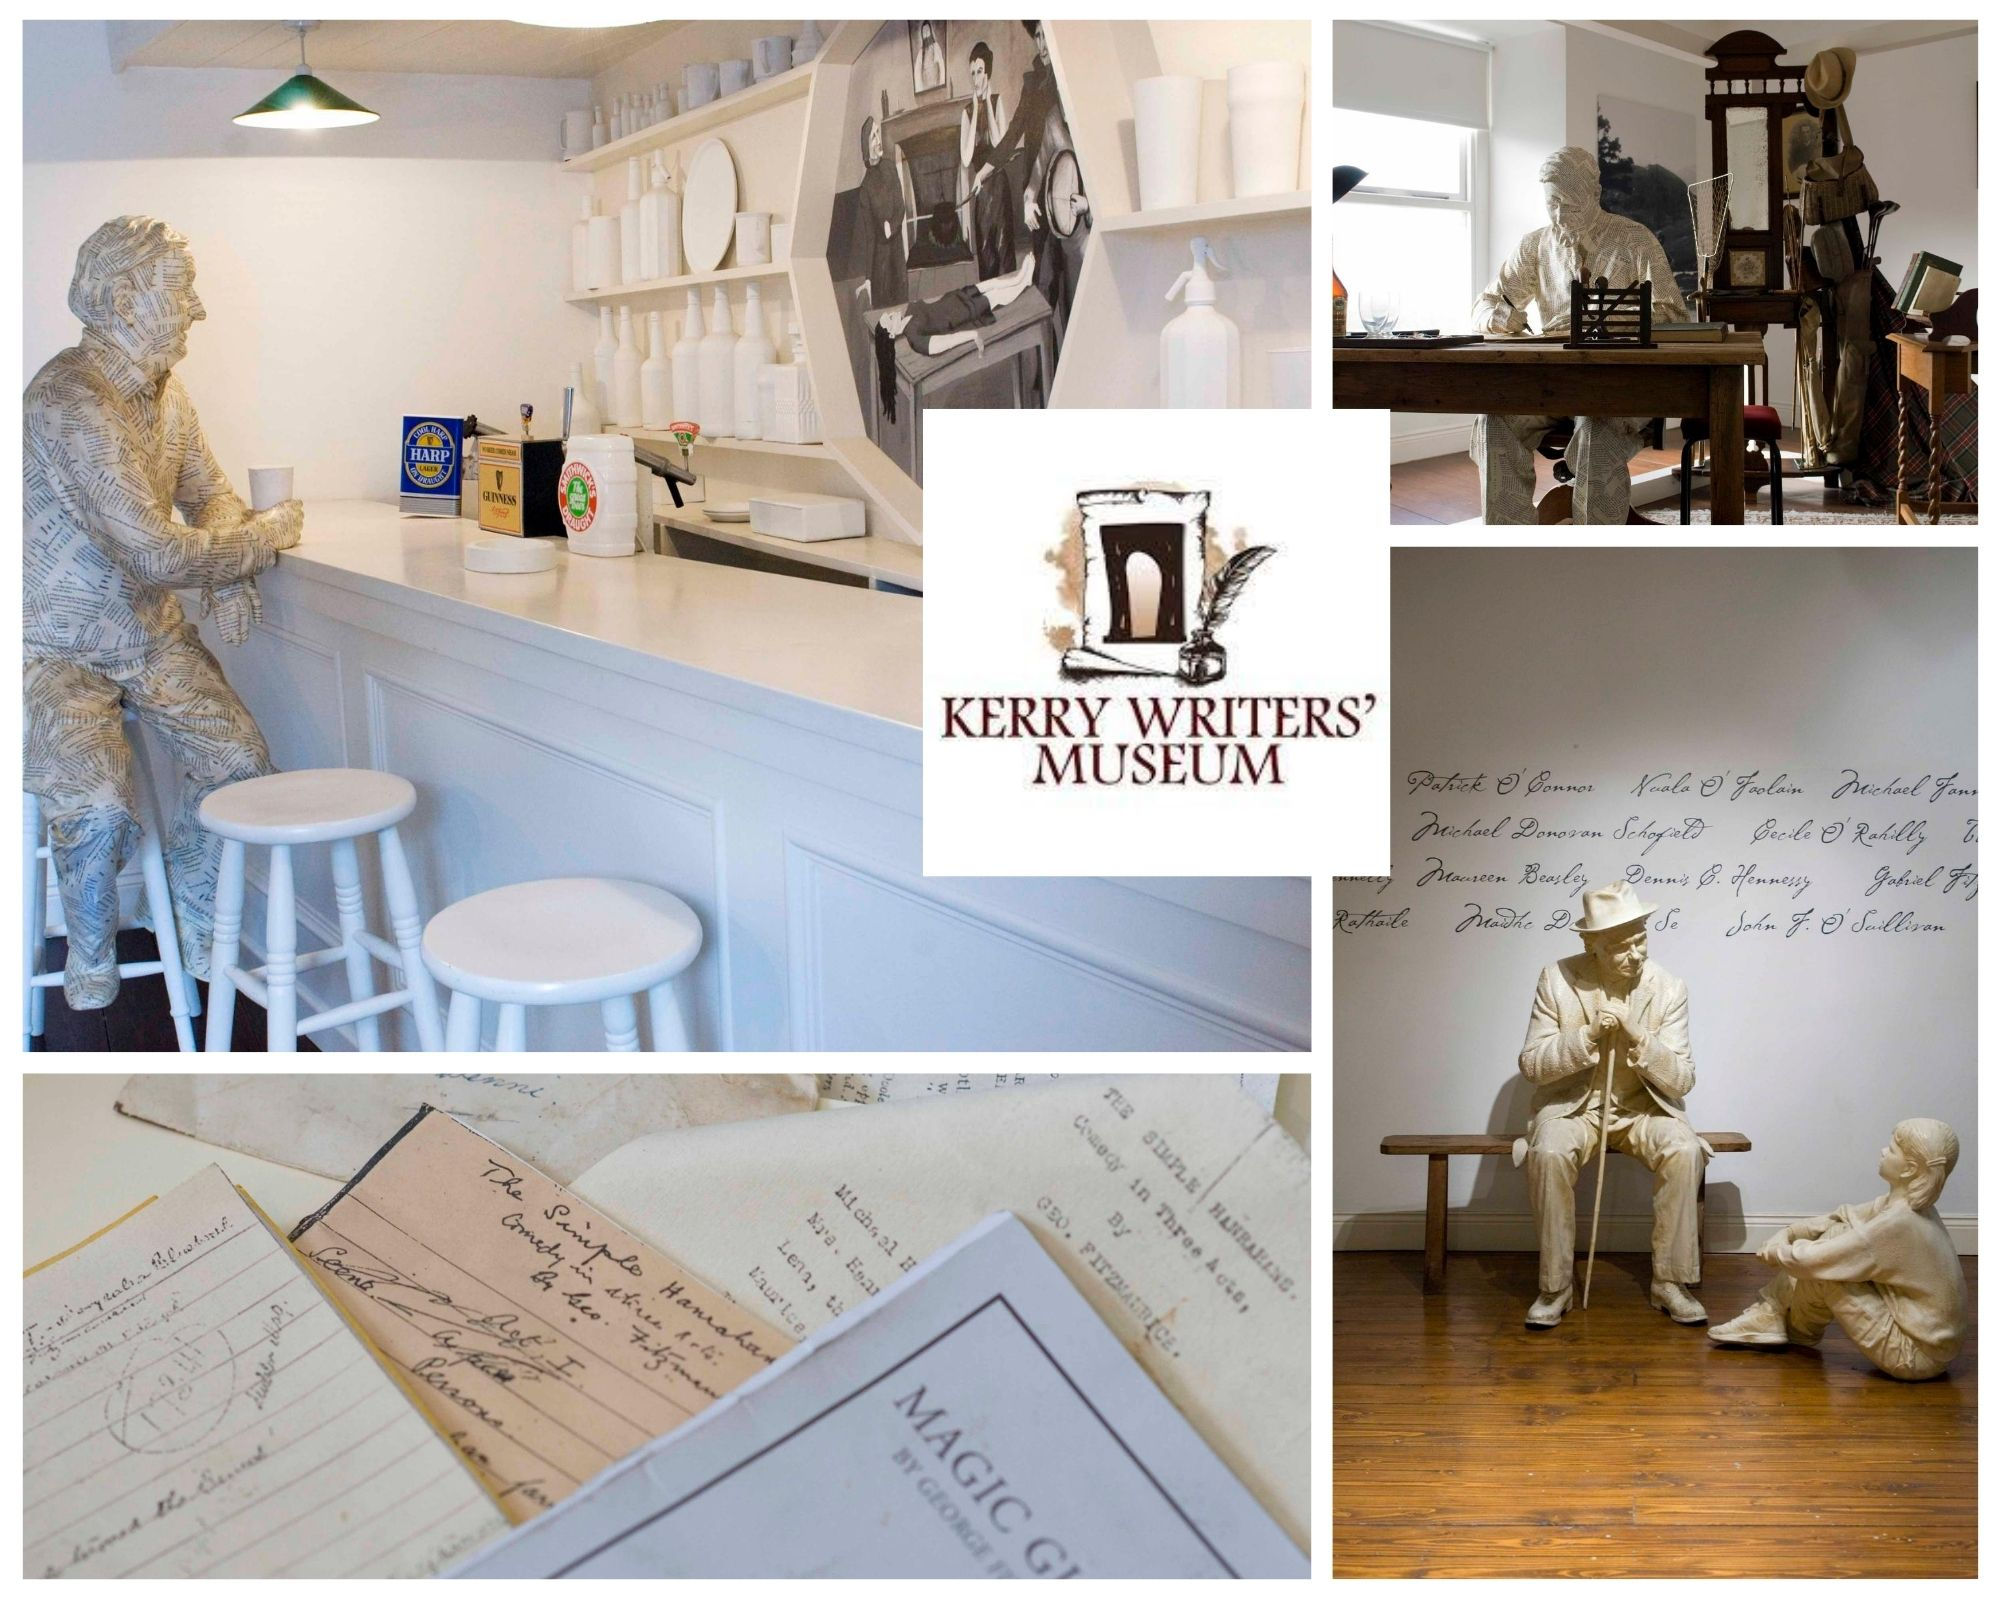 Kerry Writers' Museum Photo Collage